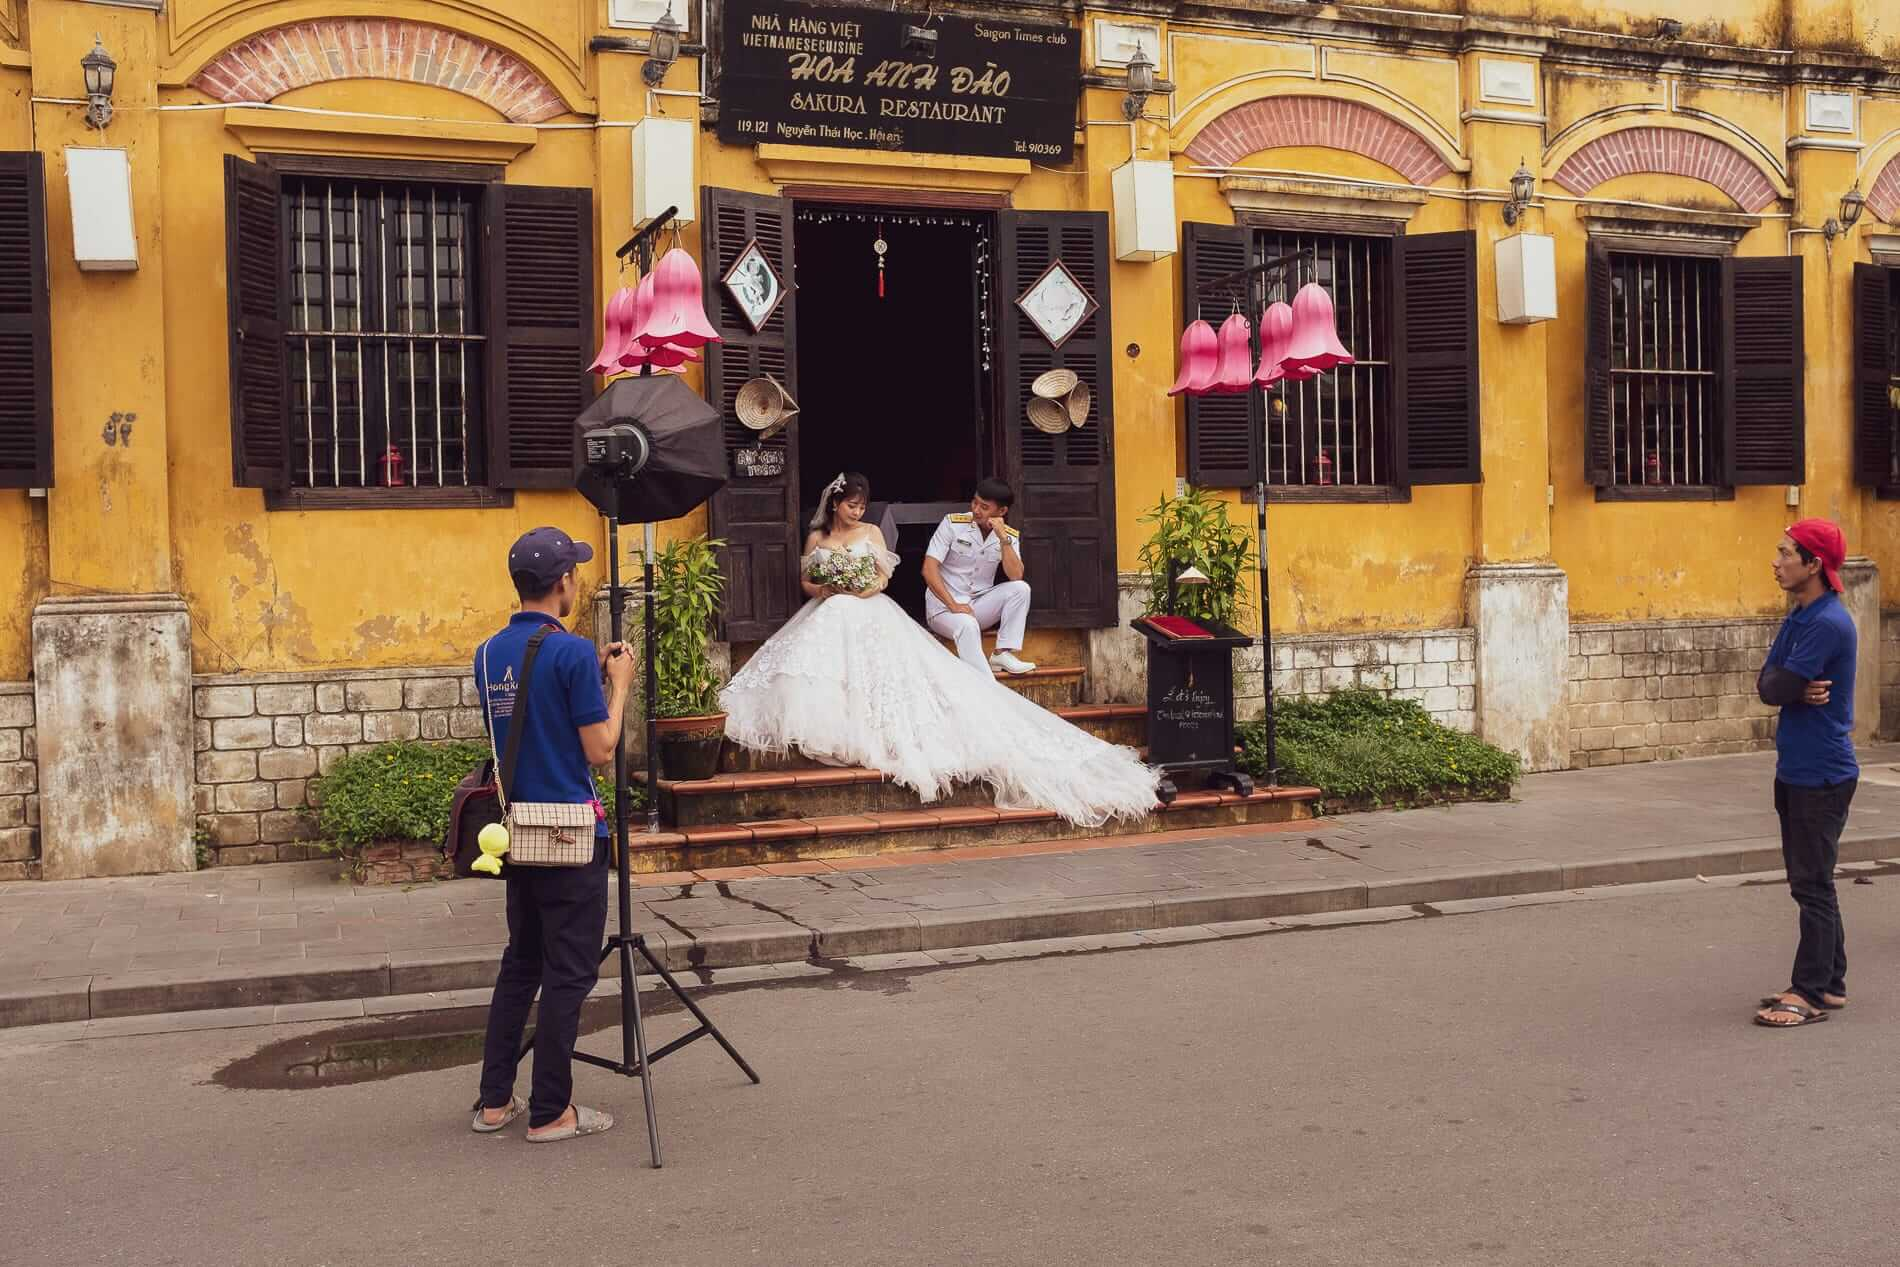 Photoshoot for a wedding in Hoi An